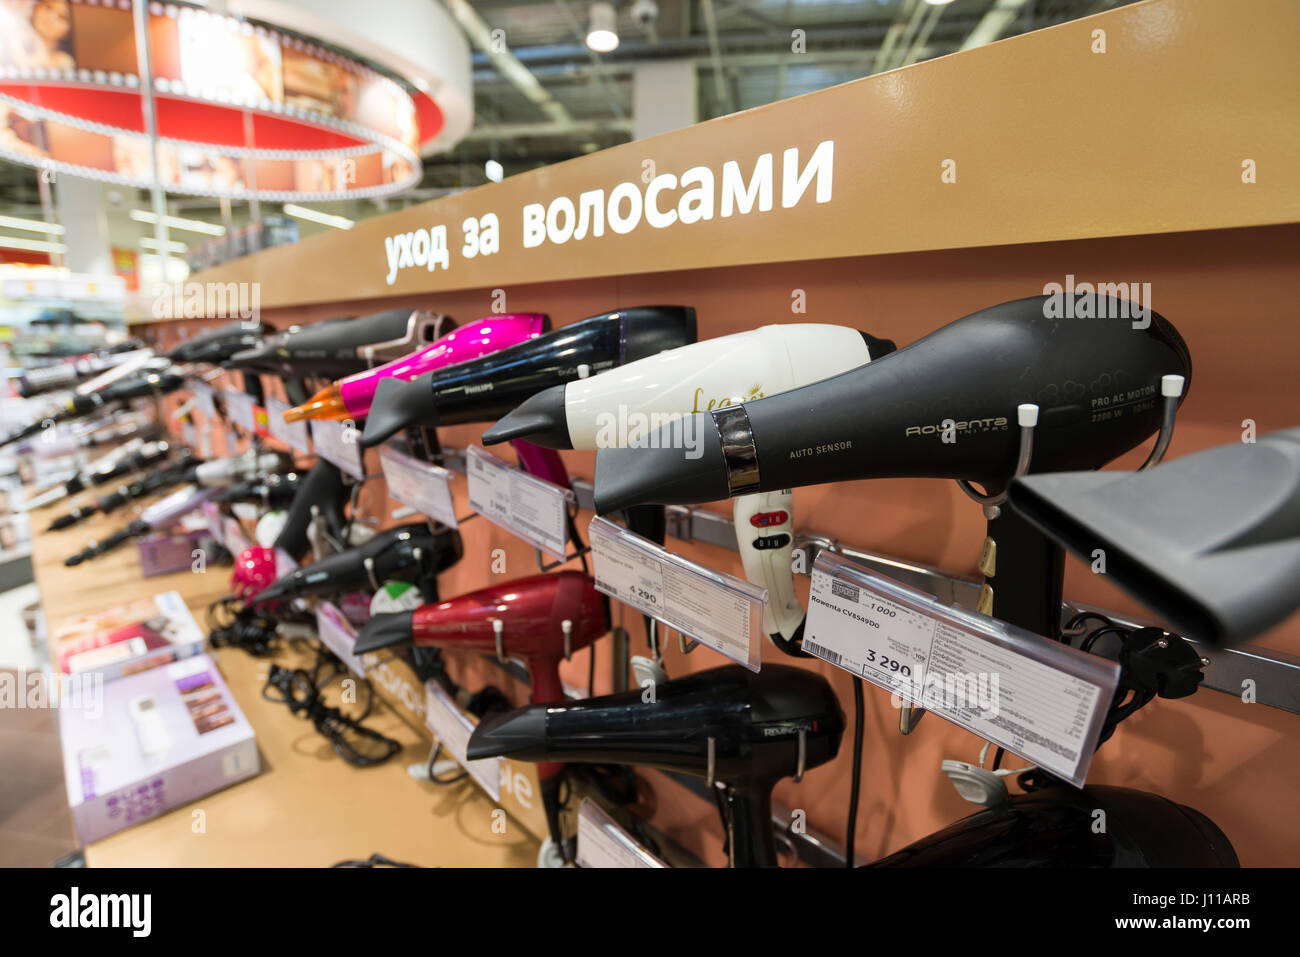 Khimki, Russia - December 22 2015. Hair dryers in Mvideo large chain stores selling electronics and household appliances - Stock Image